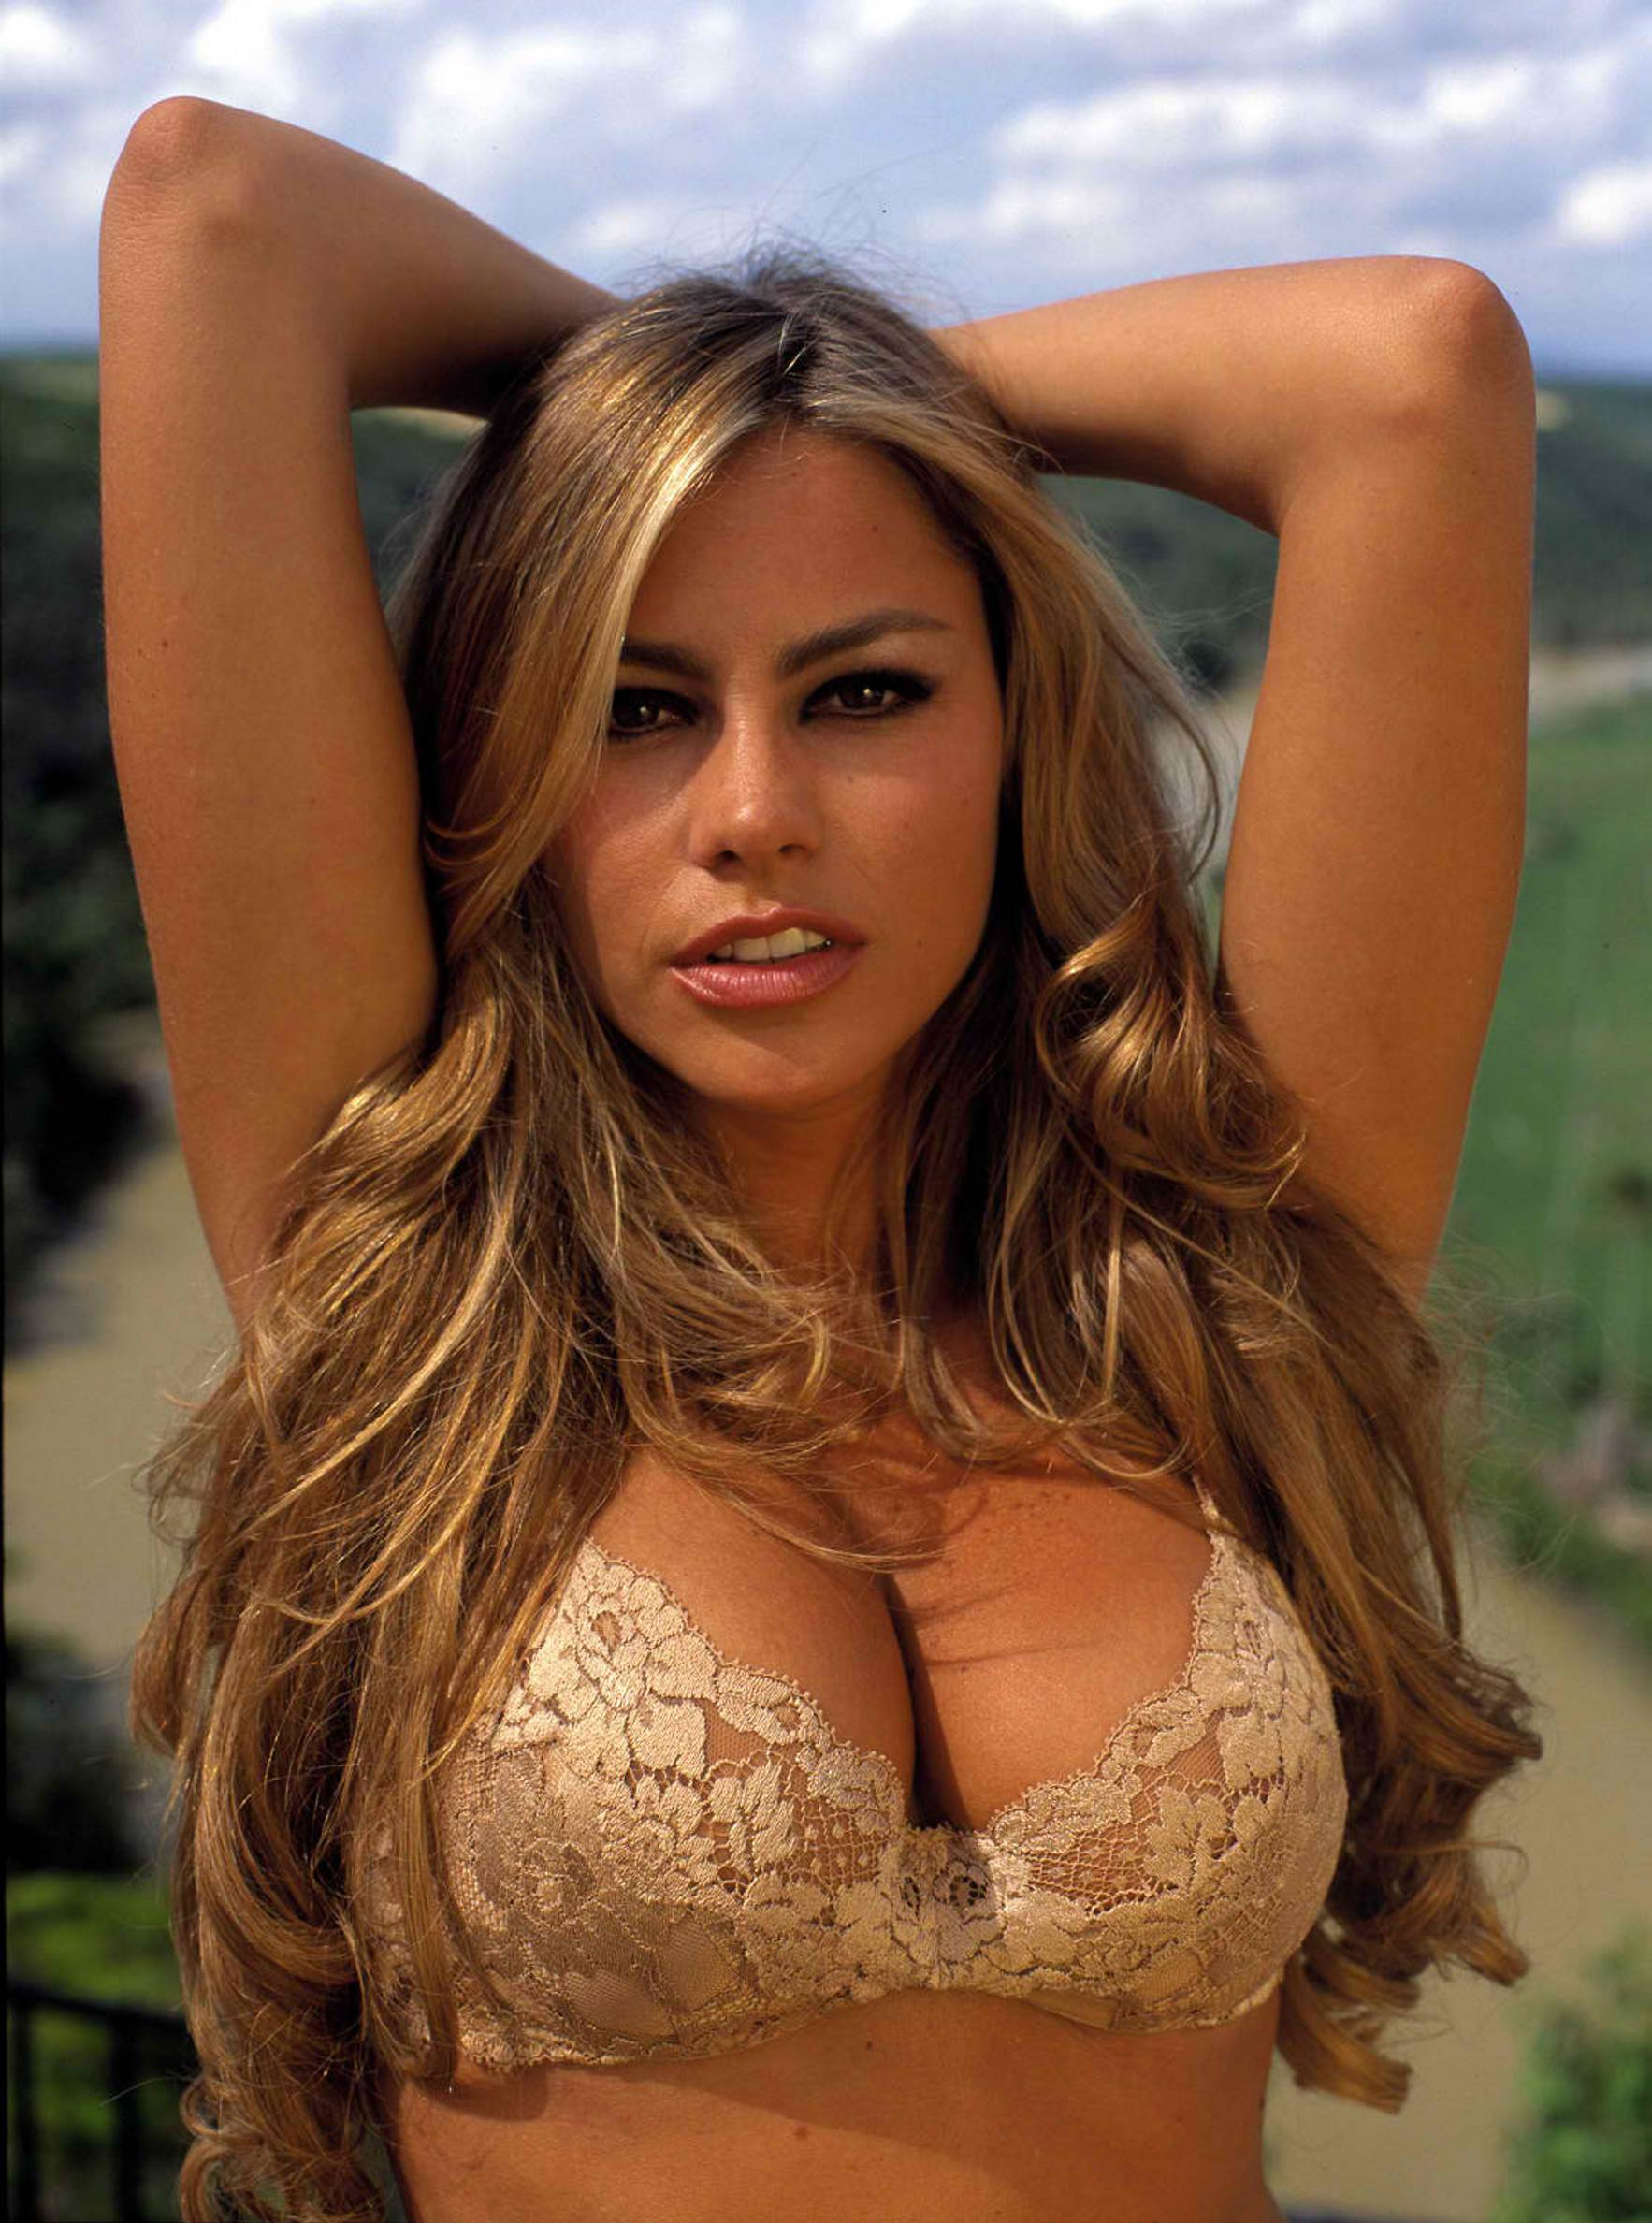 sofia vergara in lingerie